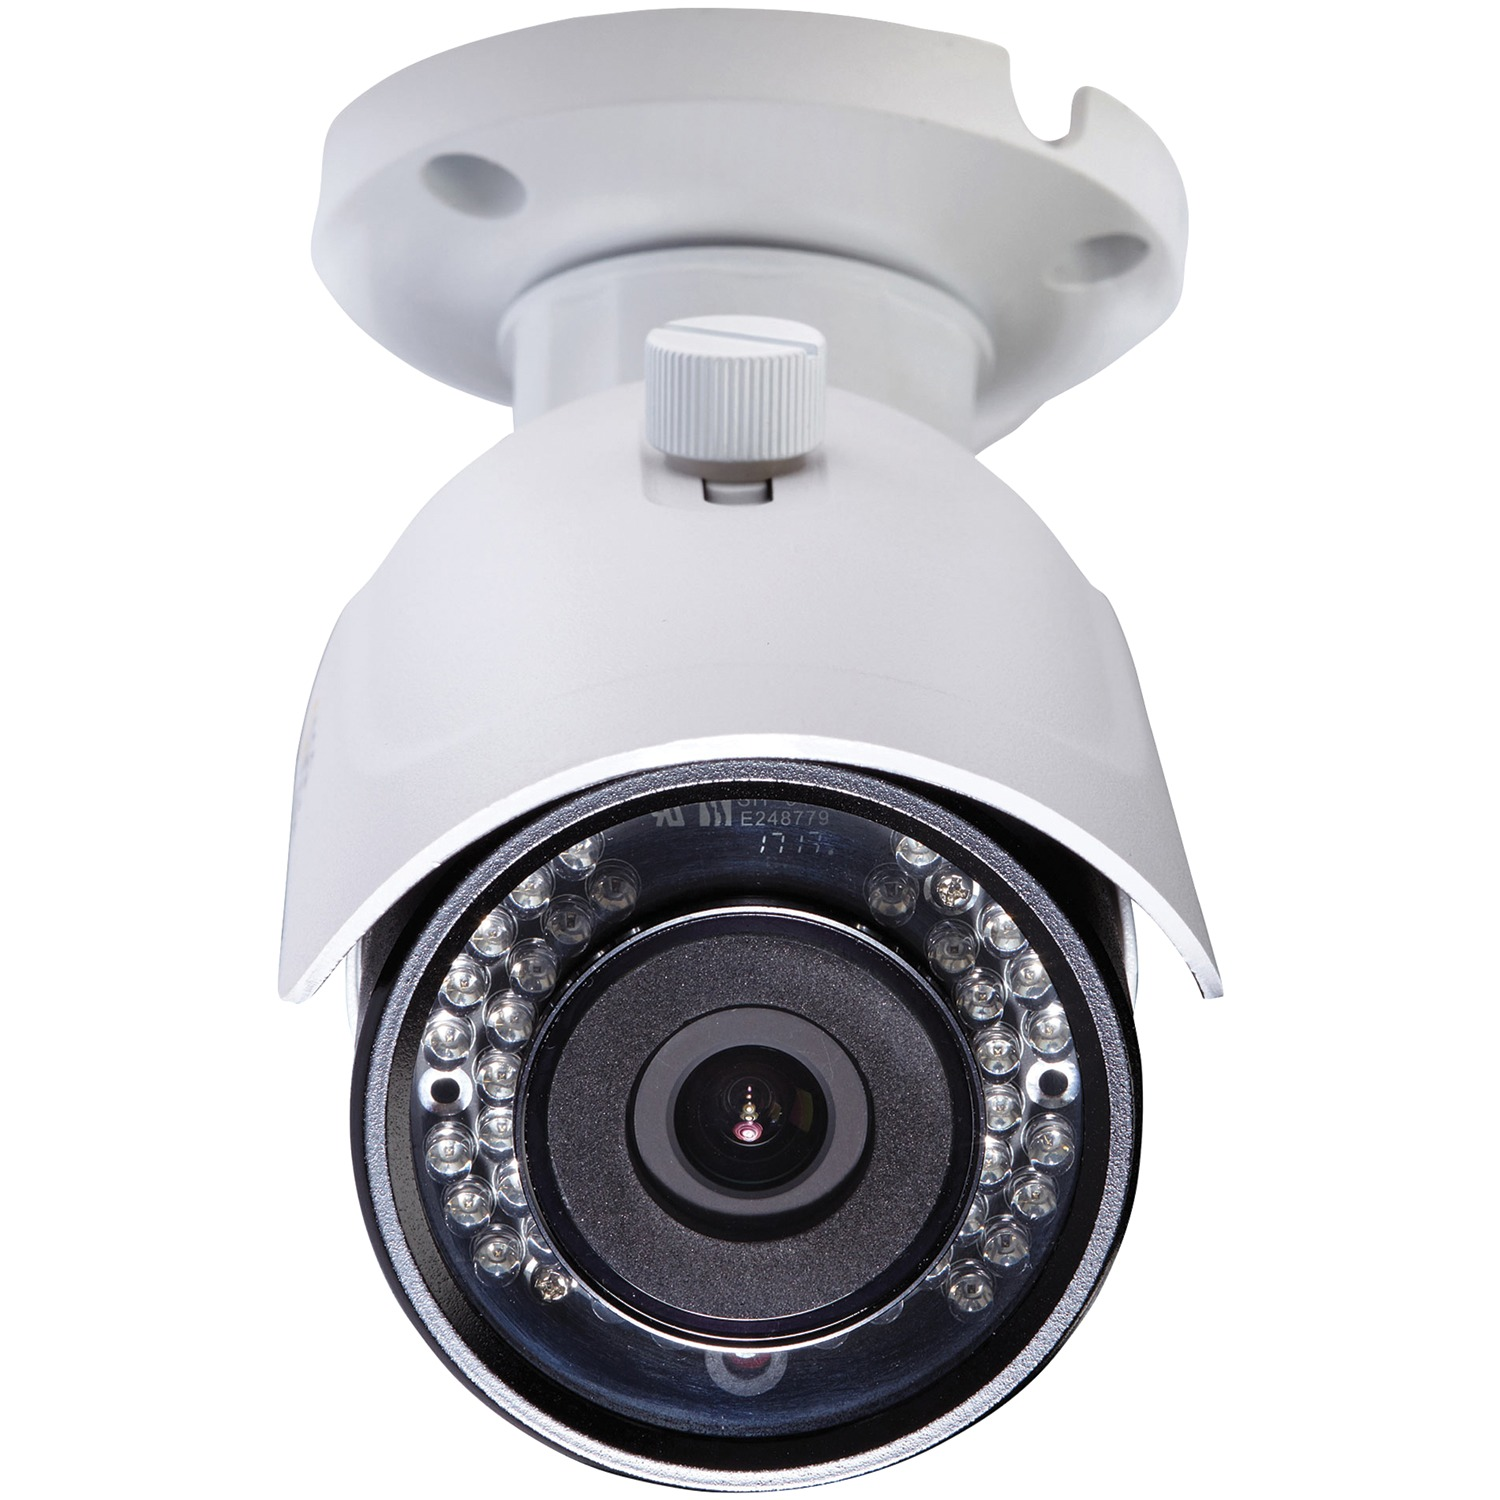 Q-See QTN8086BA 4K Ultra HD Add-on IP Bullet Camera with 100ft Night Vision